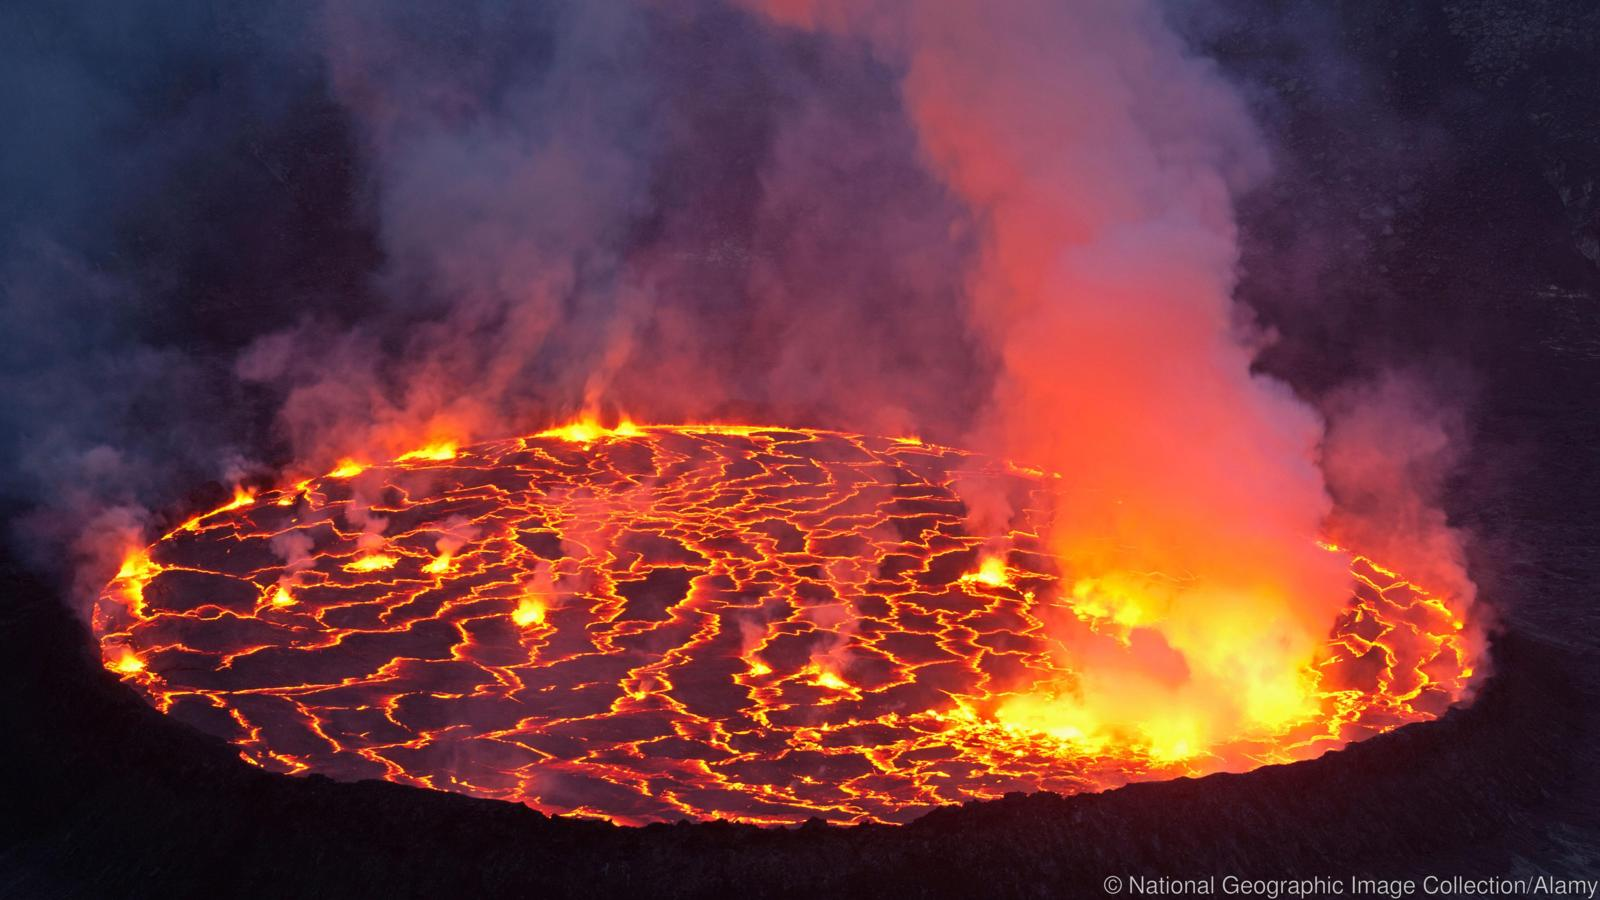 Molten rock cools and forms plates on the surface of a lava lake.